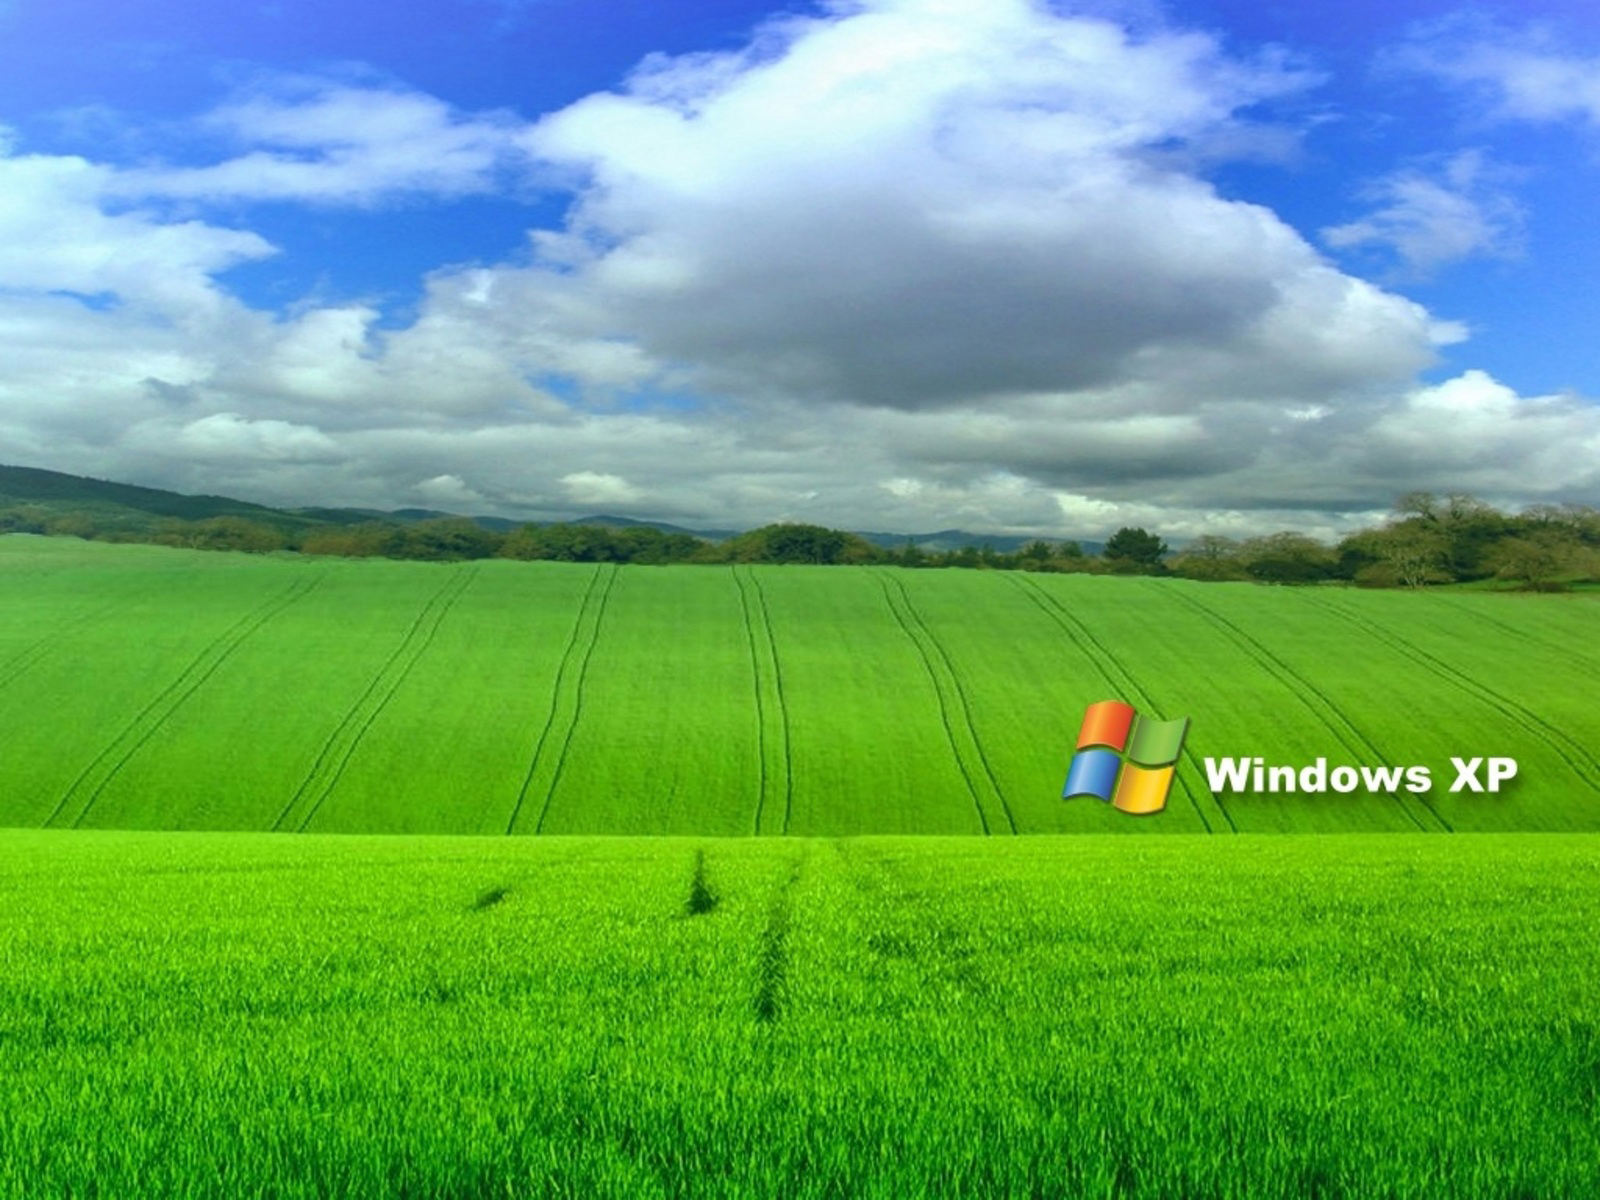 windows xp wallpapers free download 52 wallpapers